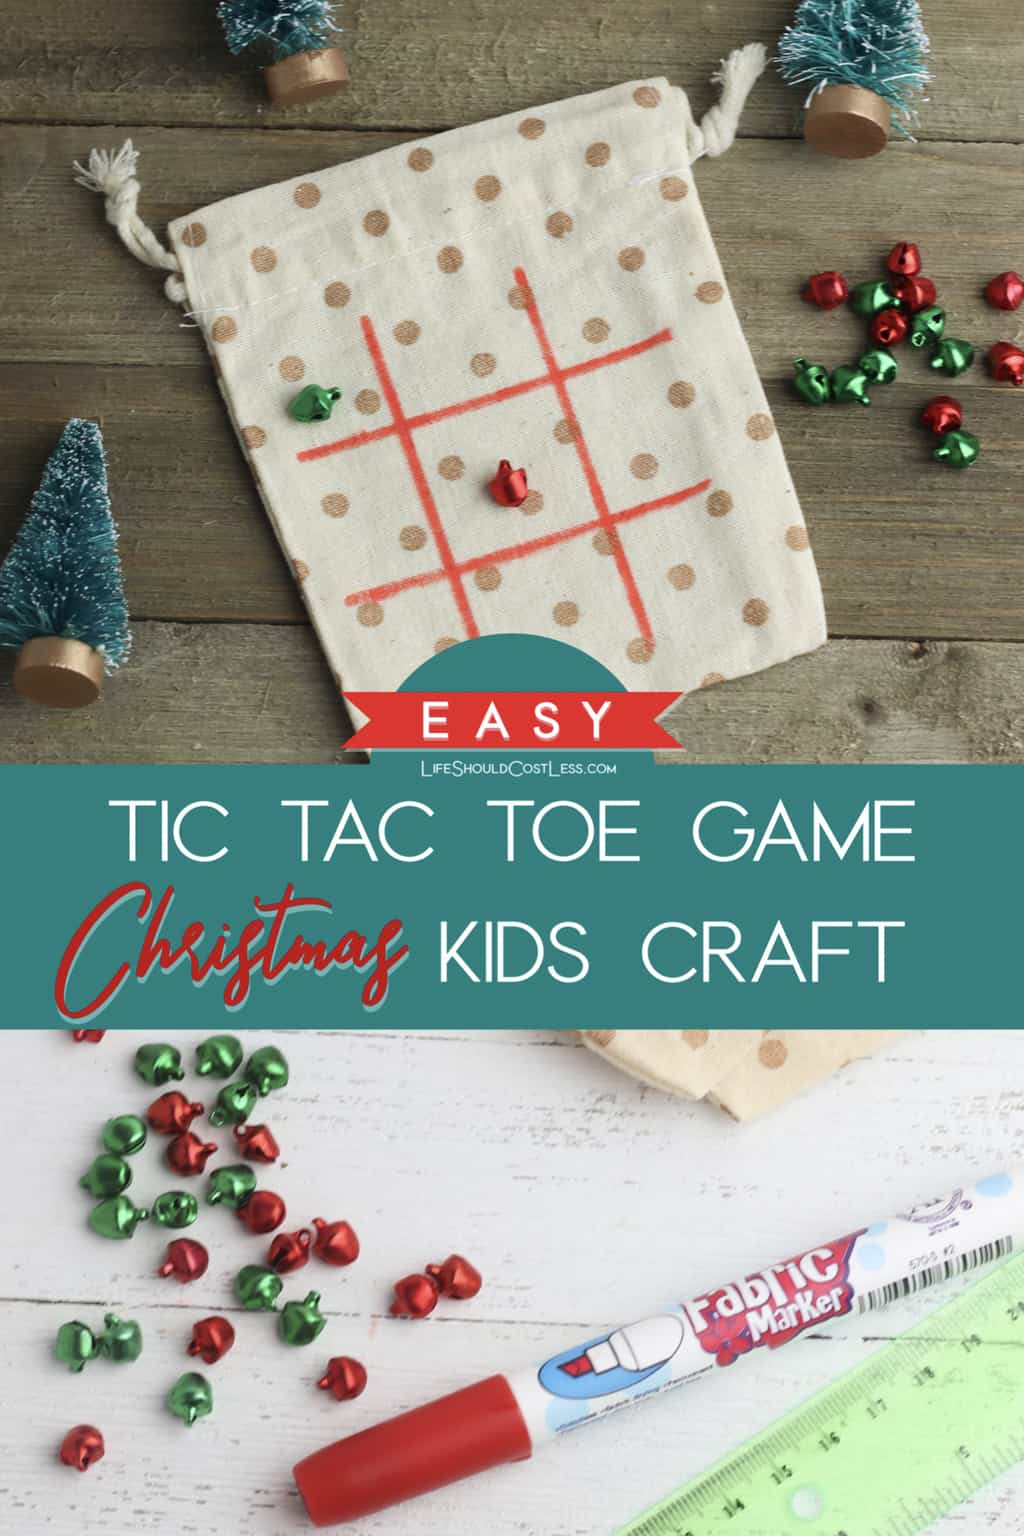 Easy Tic Tac Toe Game Christmas Kids Craft